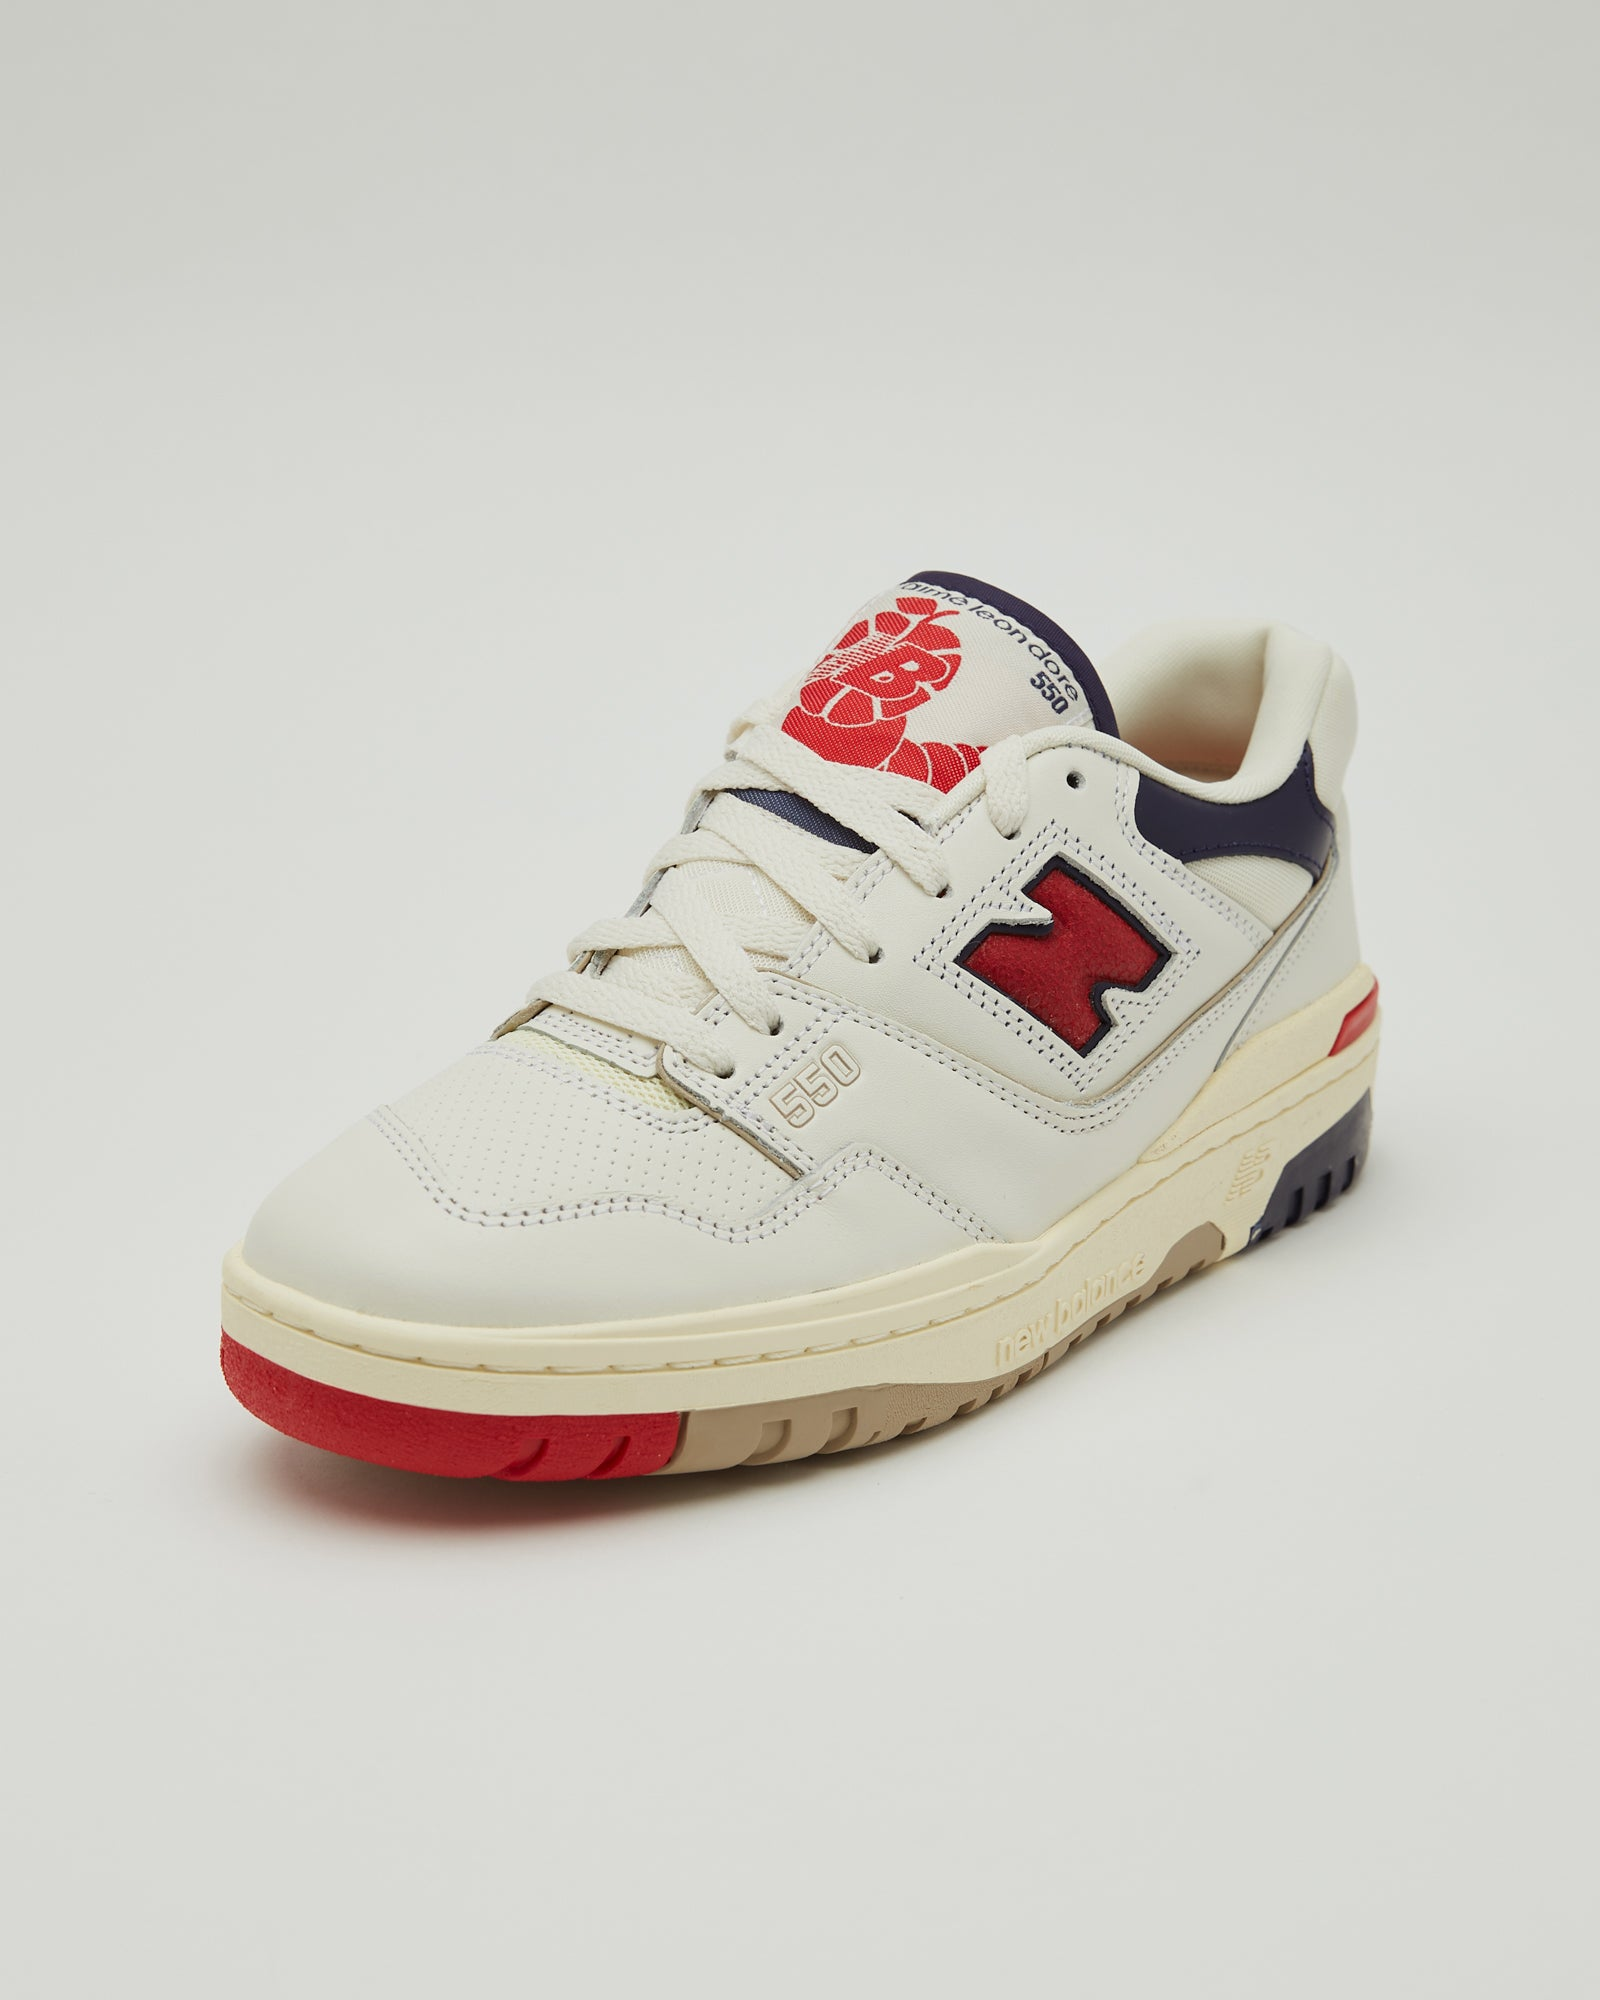 New Balance 550 Basketball Oxford in Red/Navy